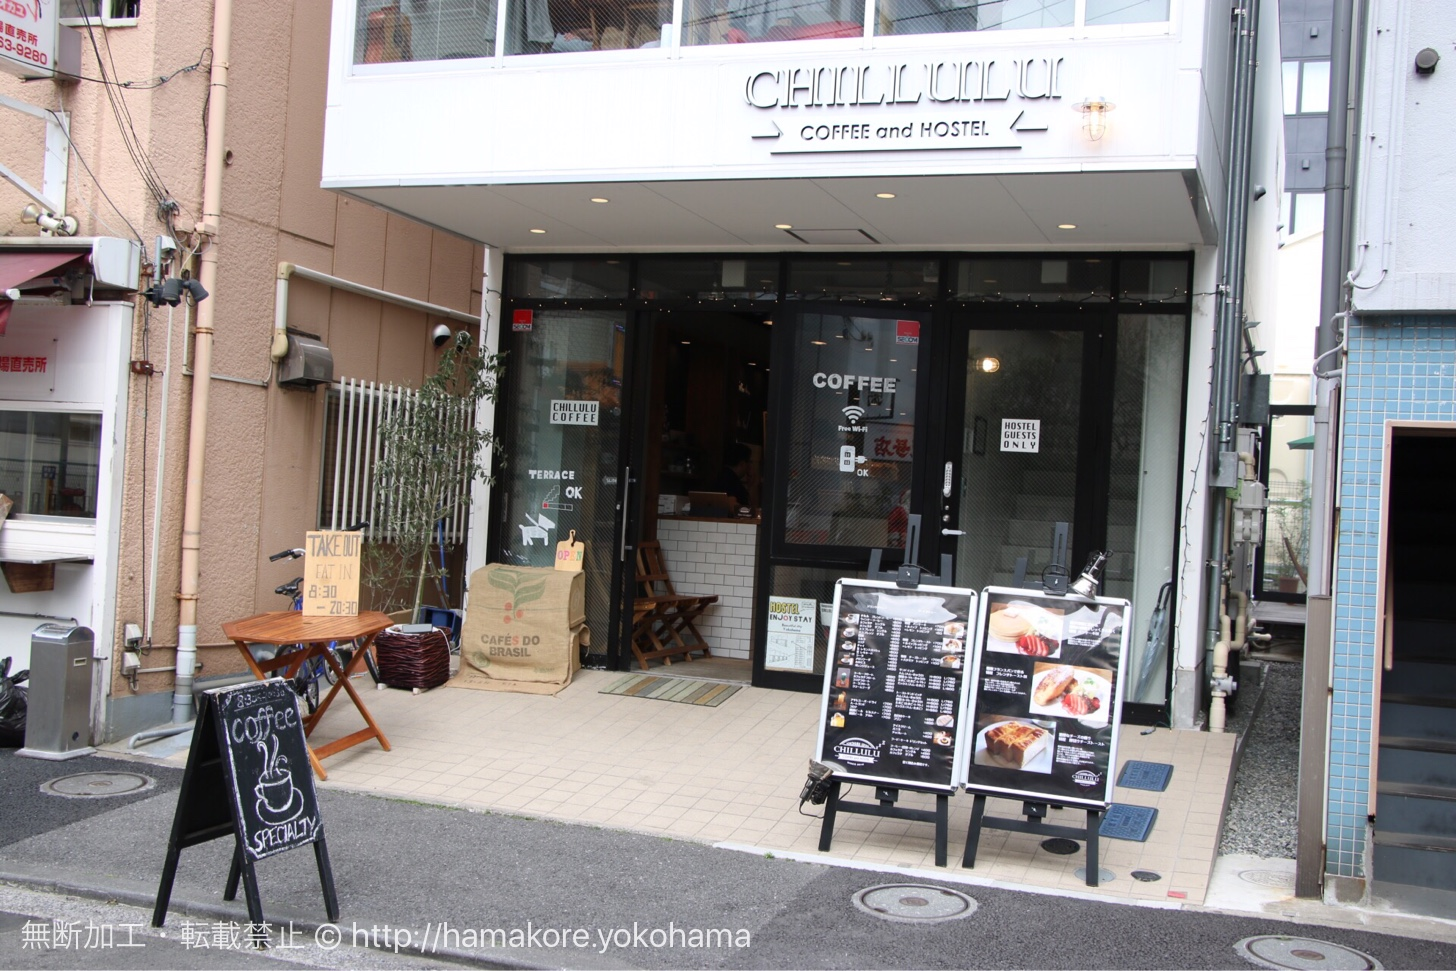 CHILLULU COFFEE 外観